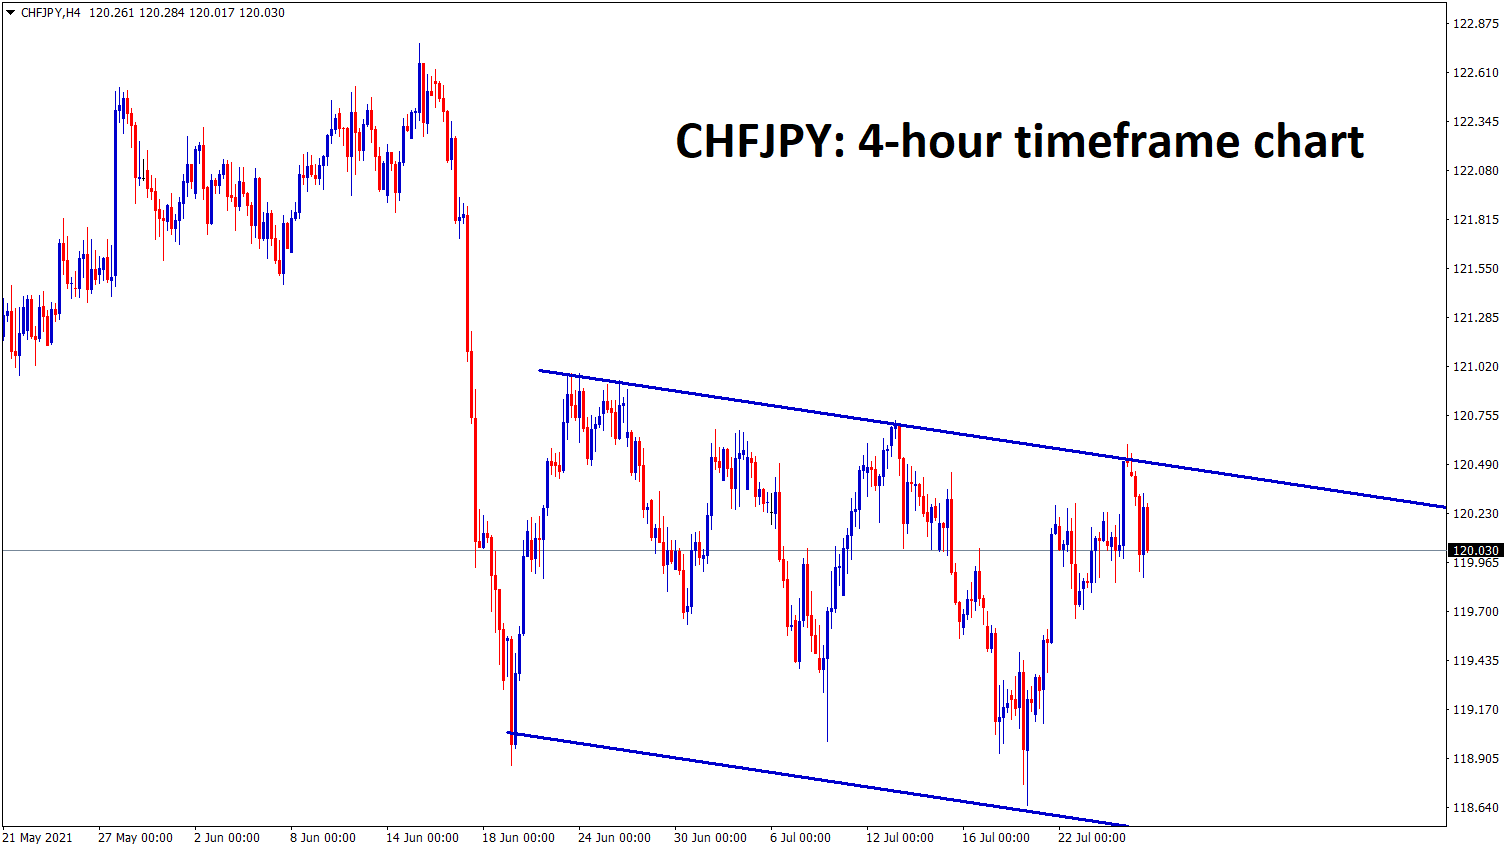 CHFJPY is moving up and down between the support and resistance ranges